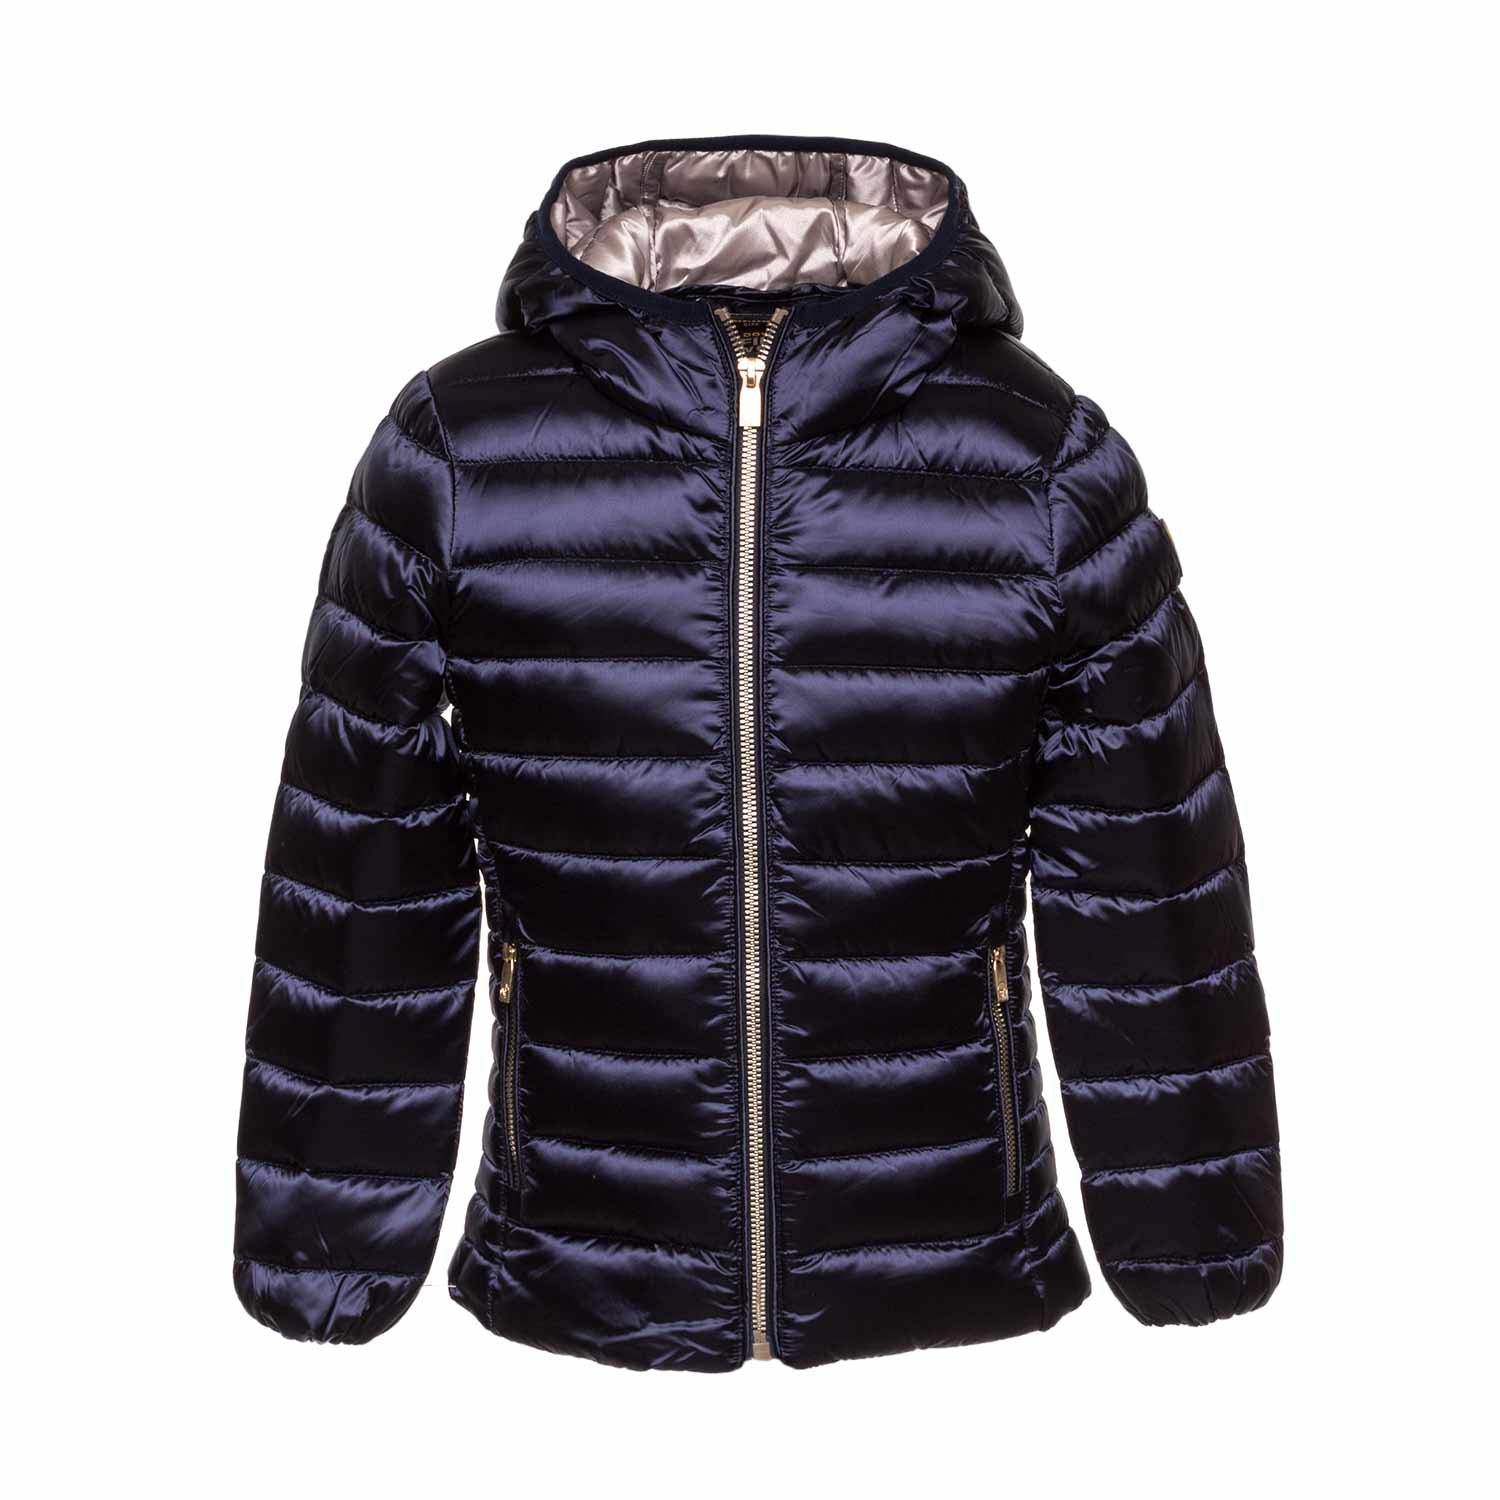 separation shoes 5551a 8fc4c Blue Aghata Girl Down Jacket